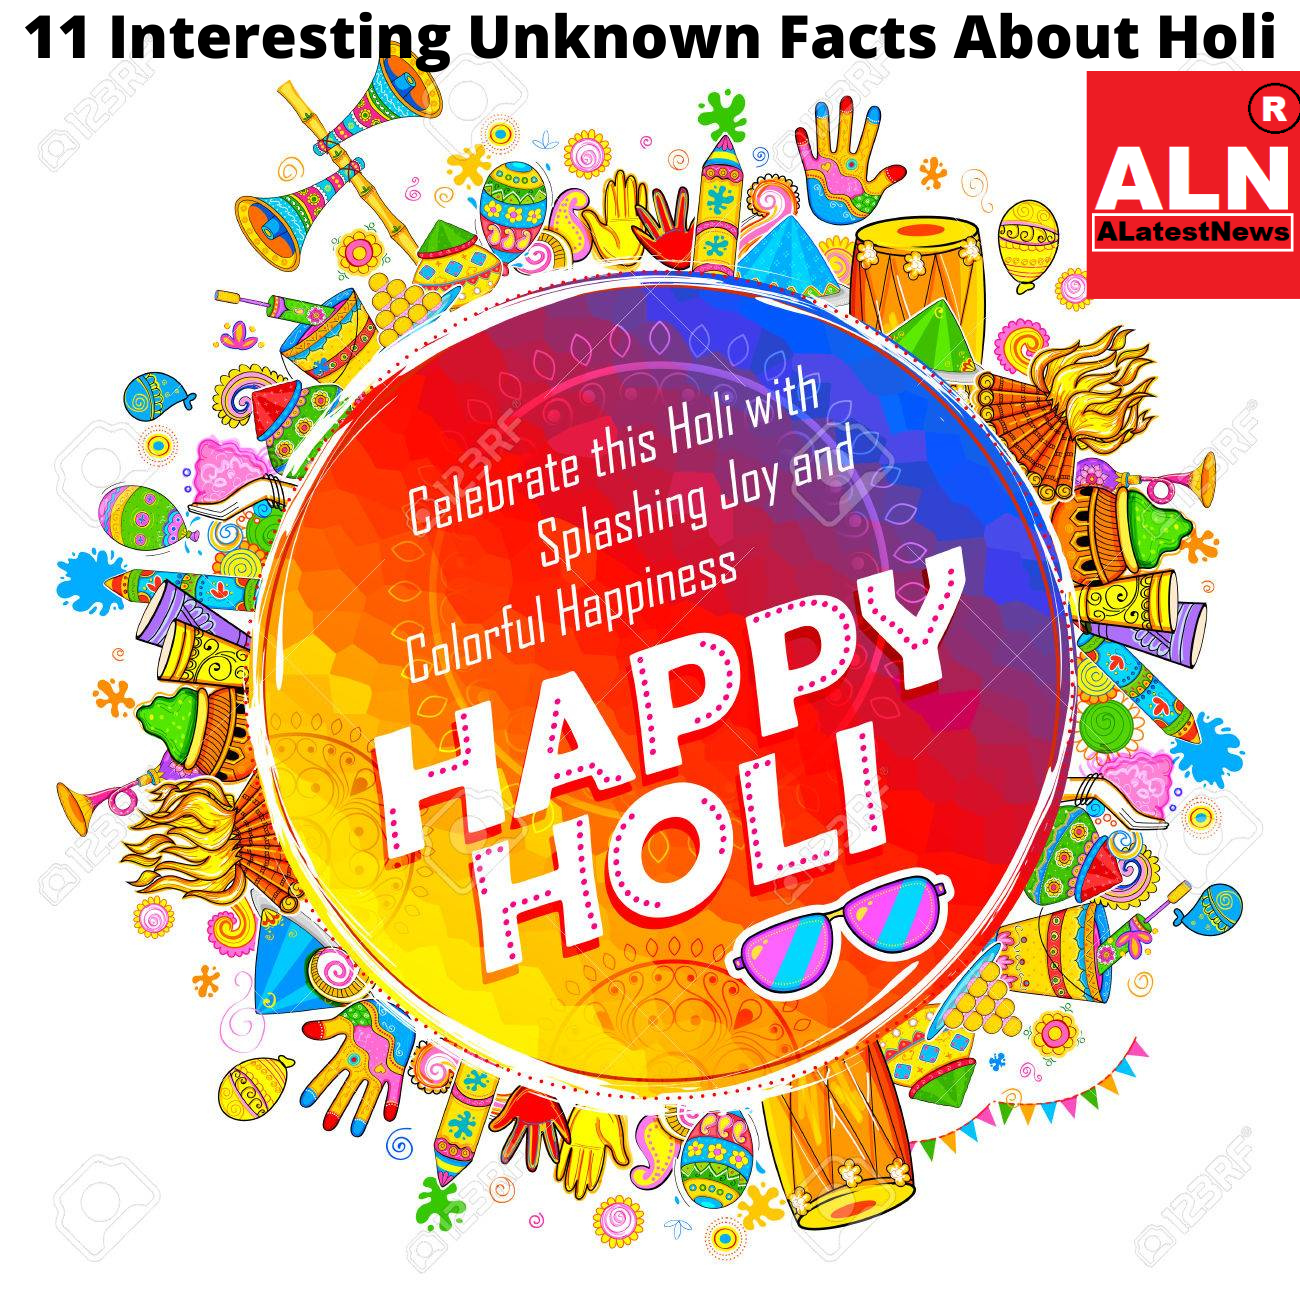 11 Interesting Unknown Facts About Holi the Indian Festival of Good Over Evil